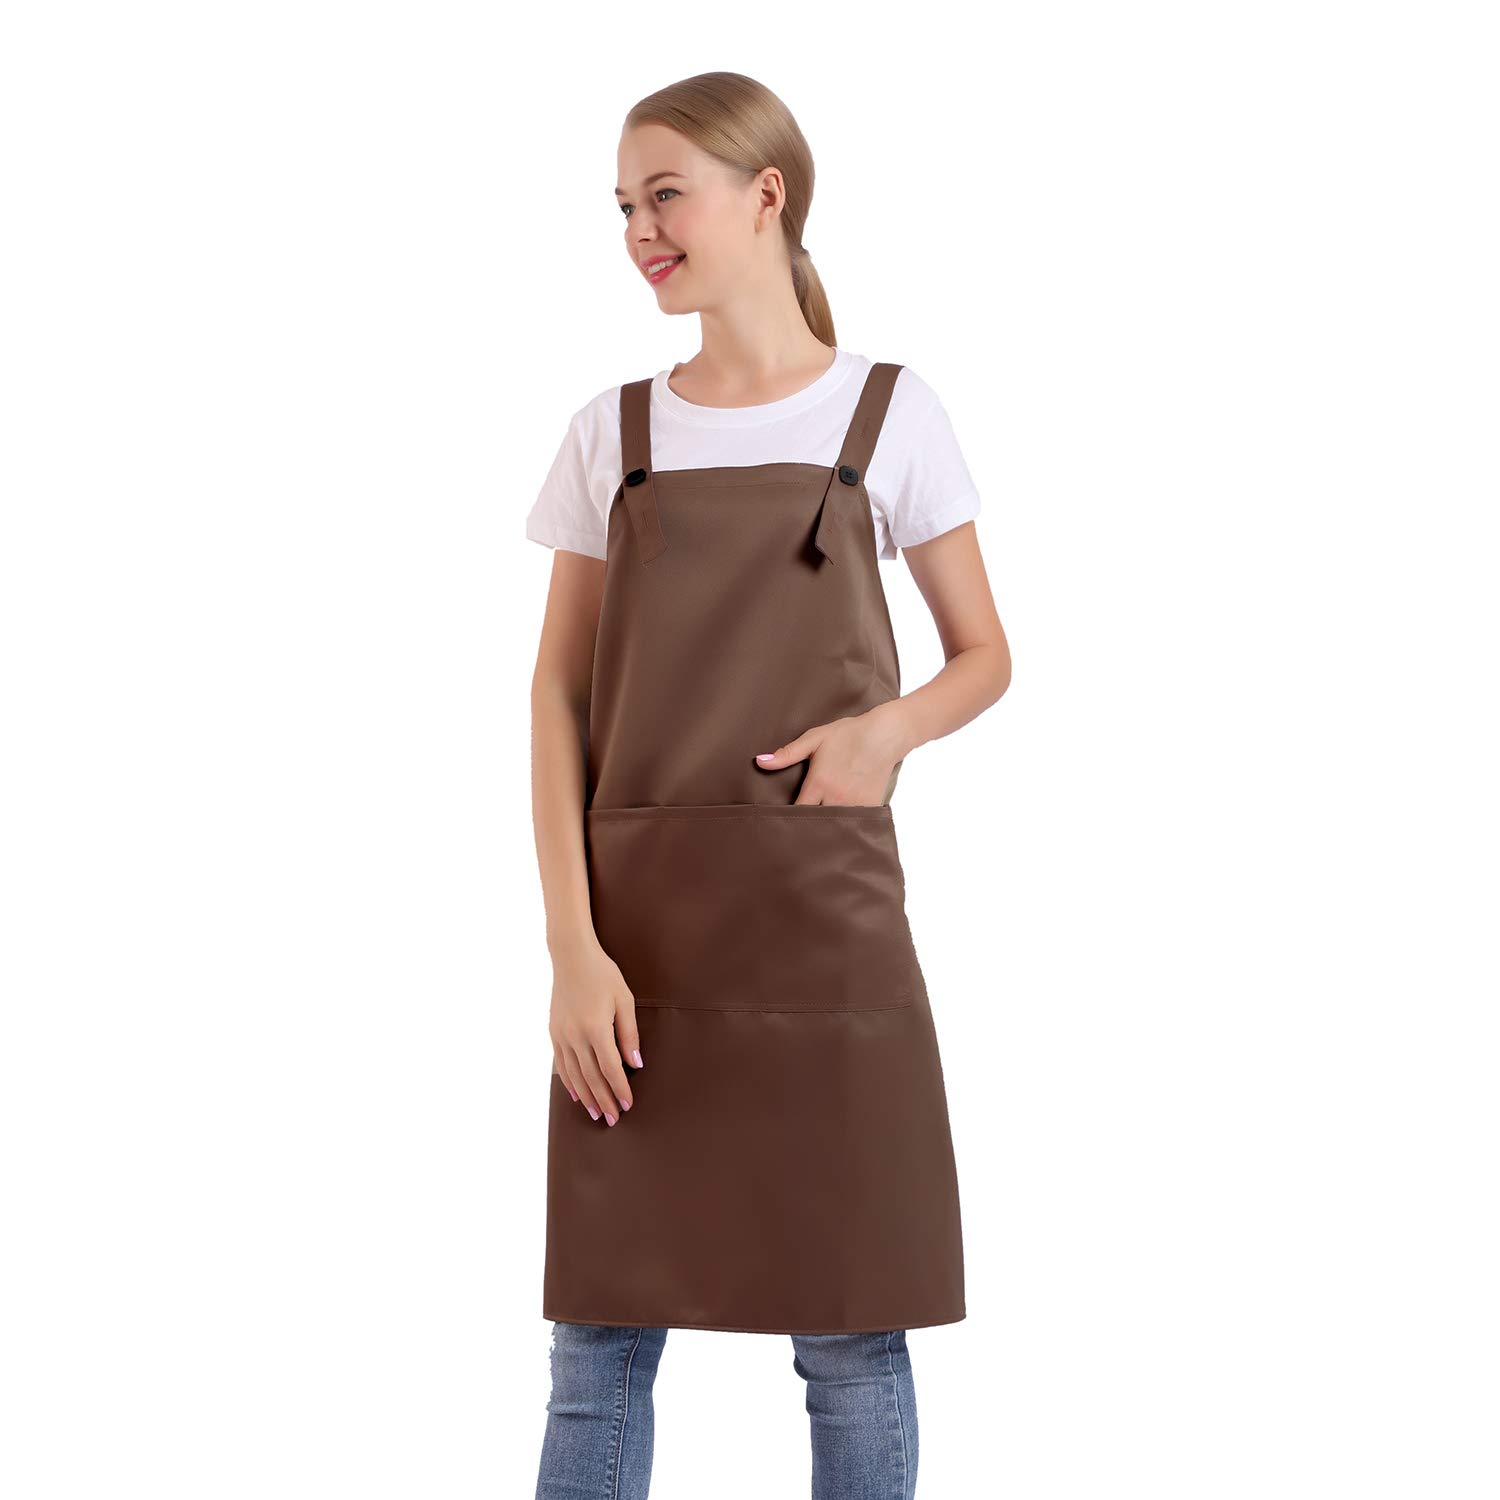 BIGHAS H Style Apron with Pocket for Women, Men Adjustable Large Size Comfortable, Kitchen, Home, Cooking 12 Colors (Brown)